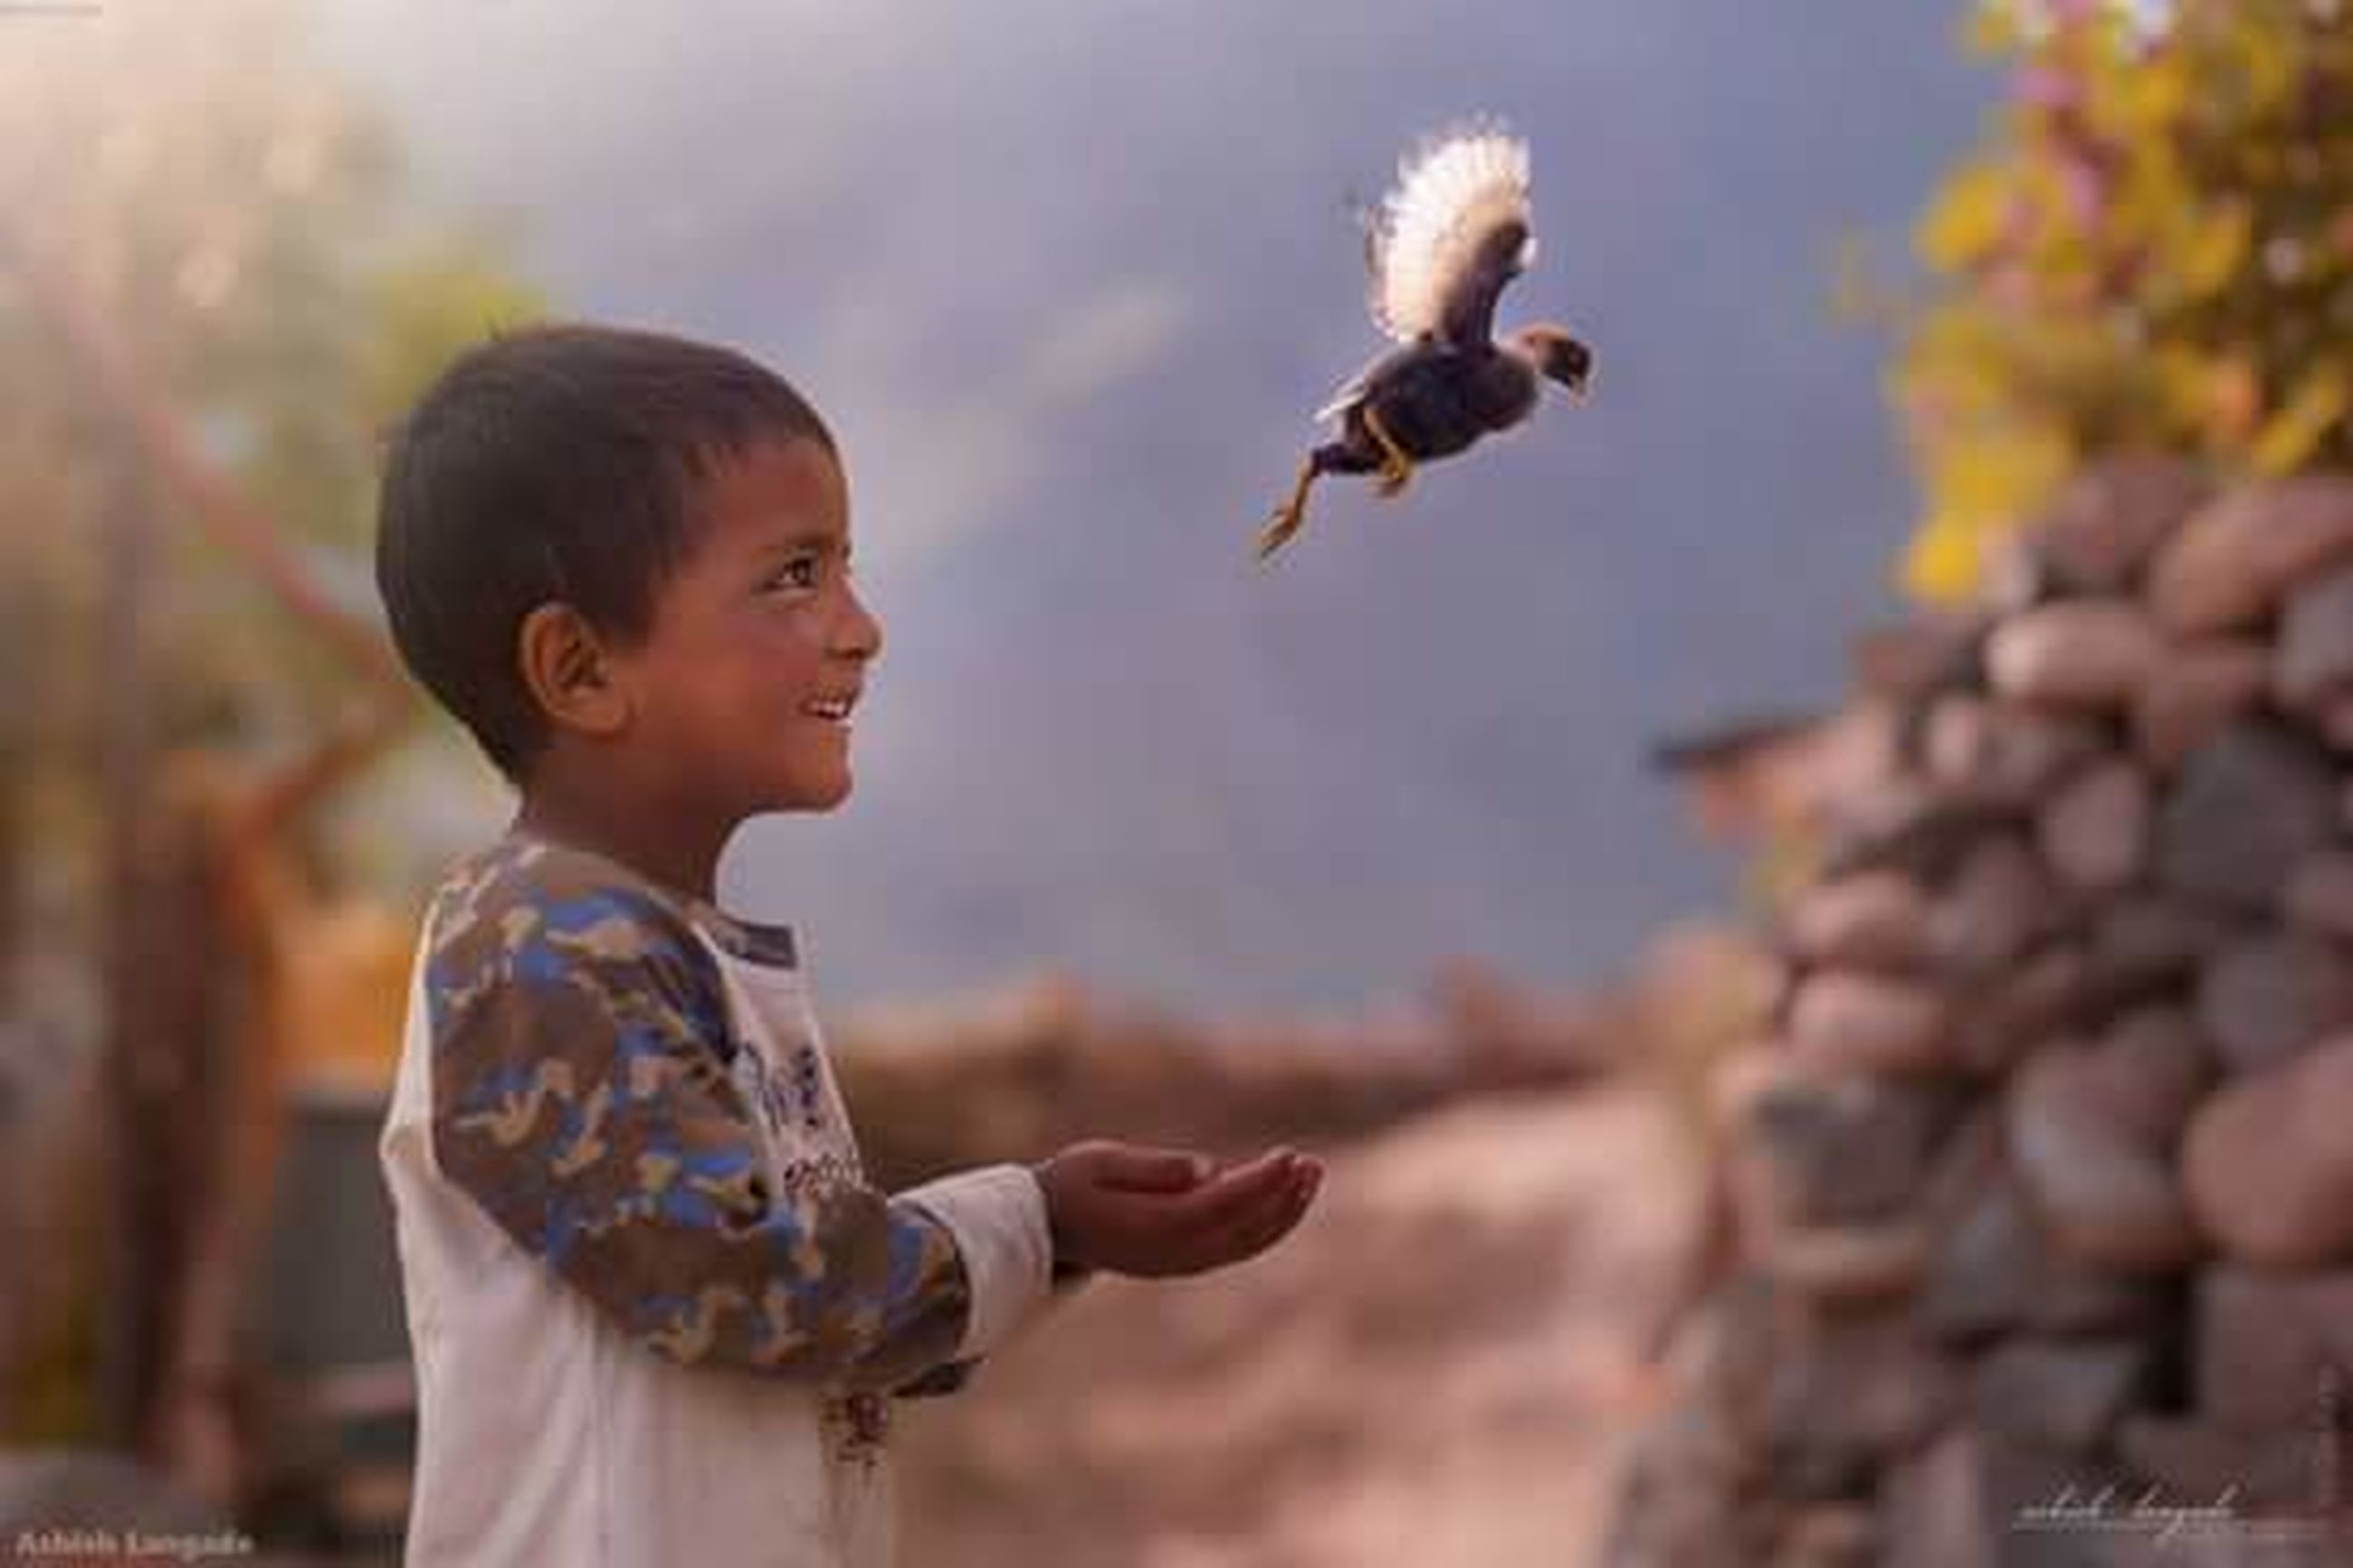 child, childhood, smiling, outdoors, one boy only, boys, bird, baby, cheerful, happiness, one person, people, animal themes, day